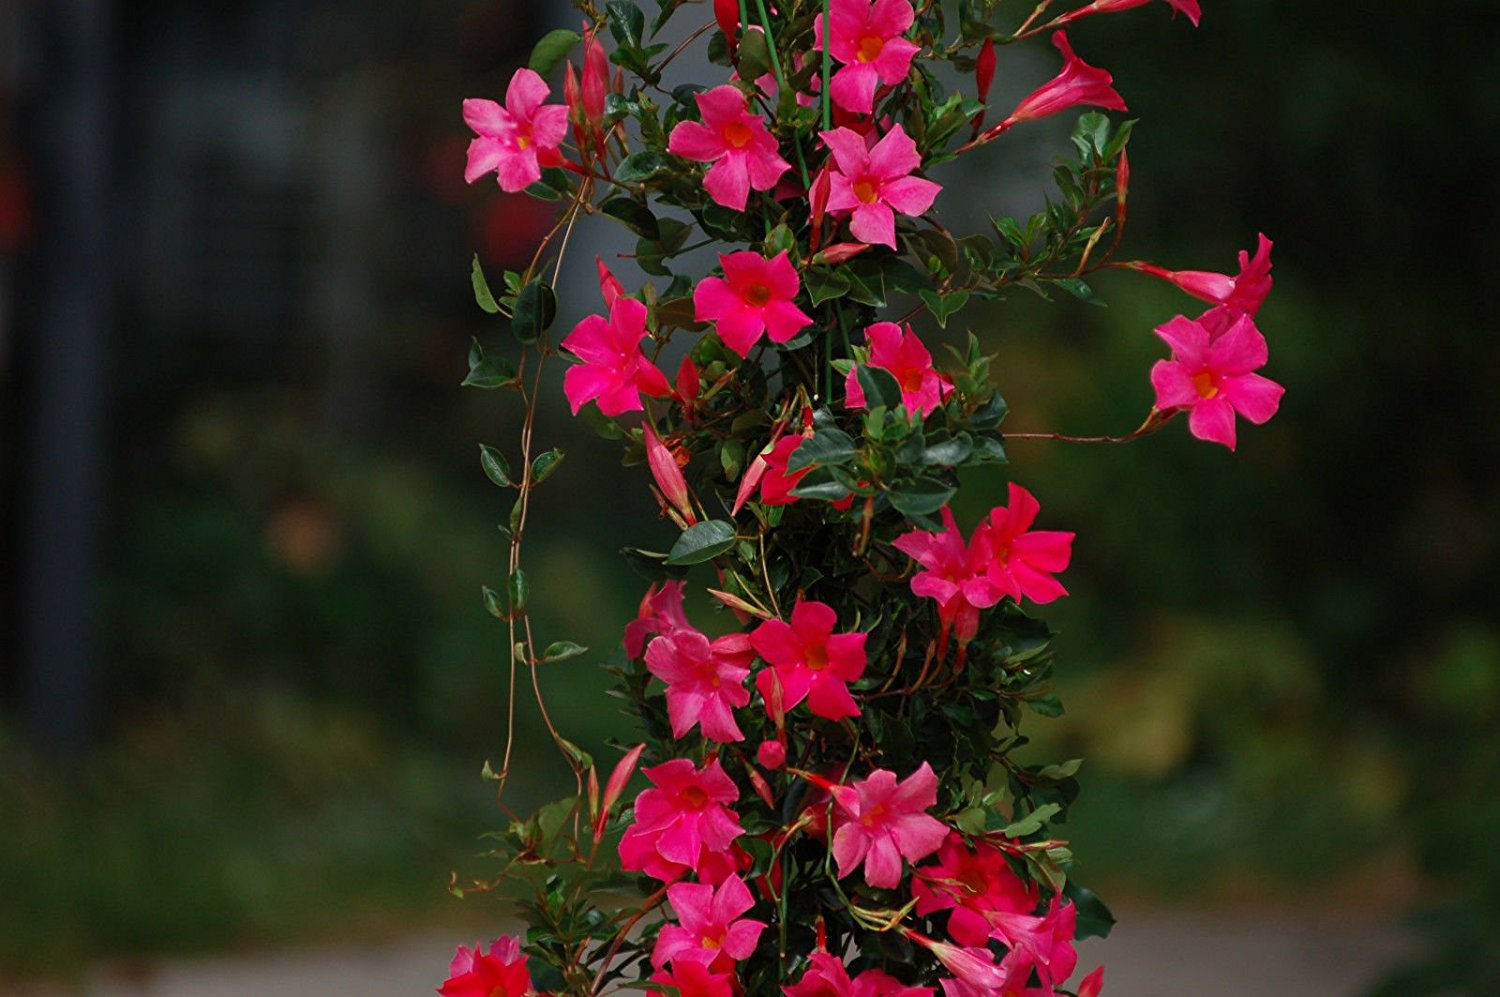 The Mandevilla: An Easy Heat-Tolerant, Low-Water Flower